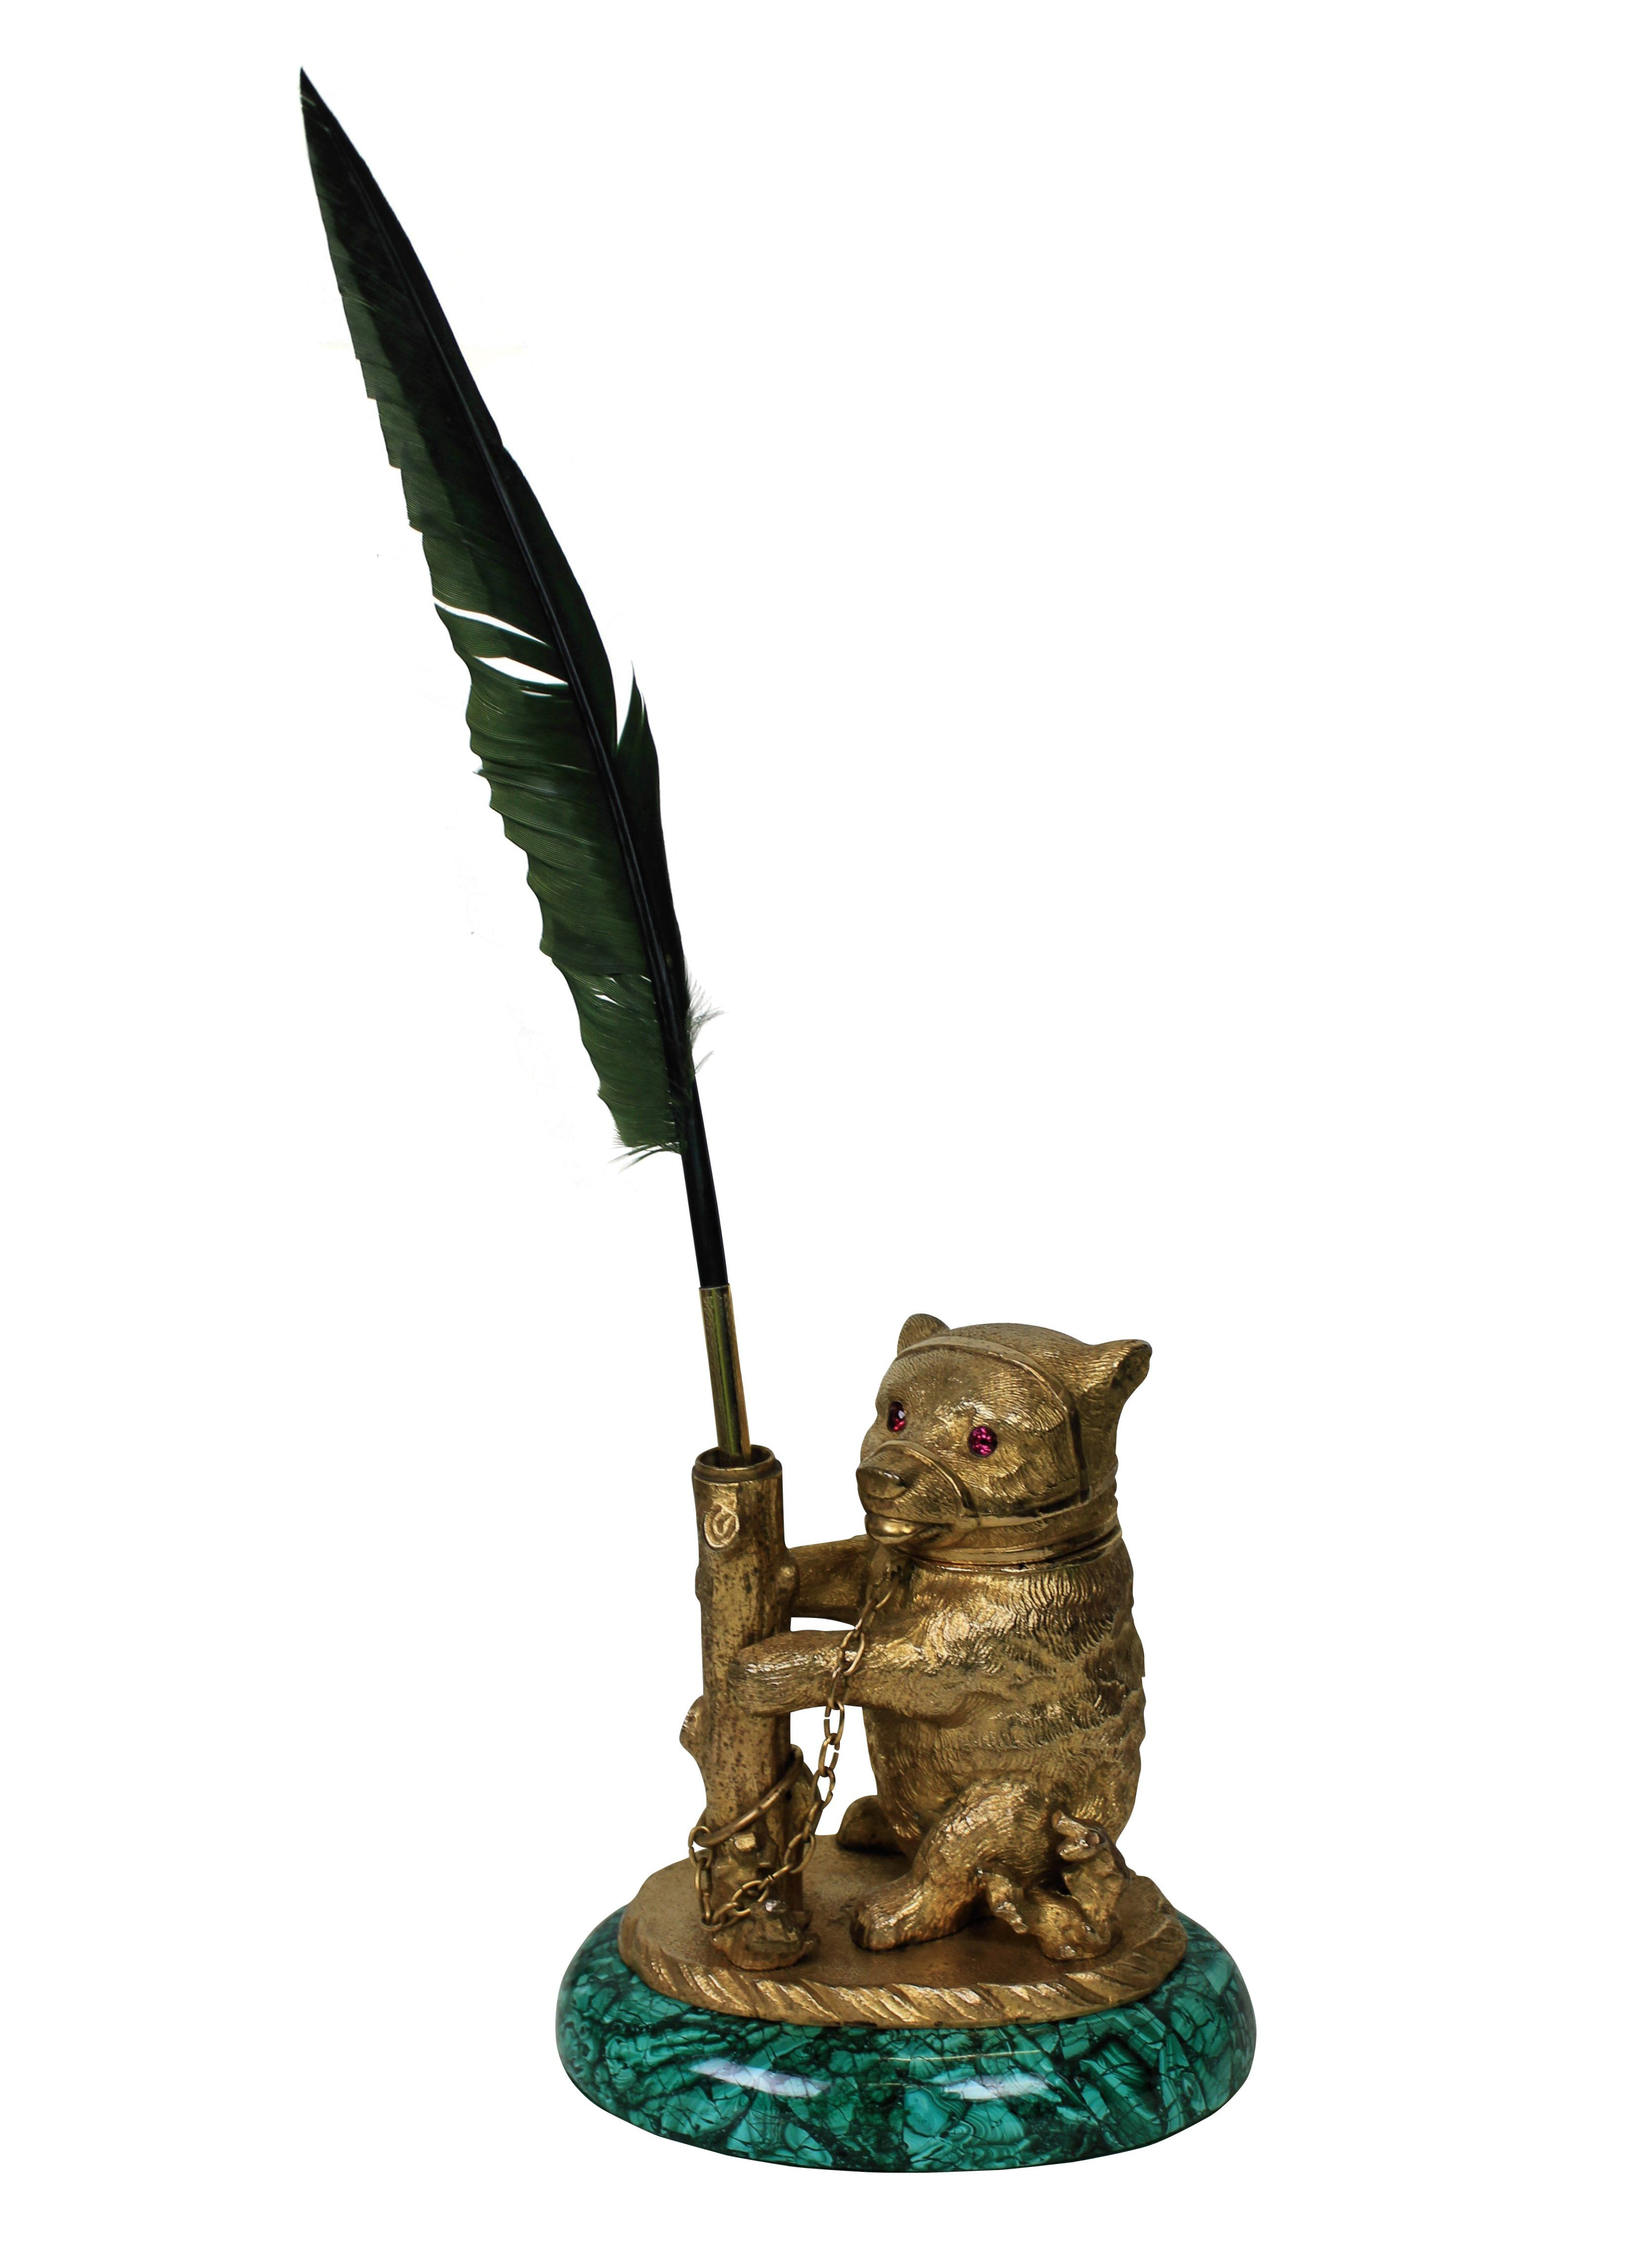 A fine Russian encrier (ink pot) in the form of a bear in ormolu, with ruby eyes and on a malachite base. c.1890 Measures: 14cm high x 17cm wide x 9cm deep